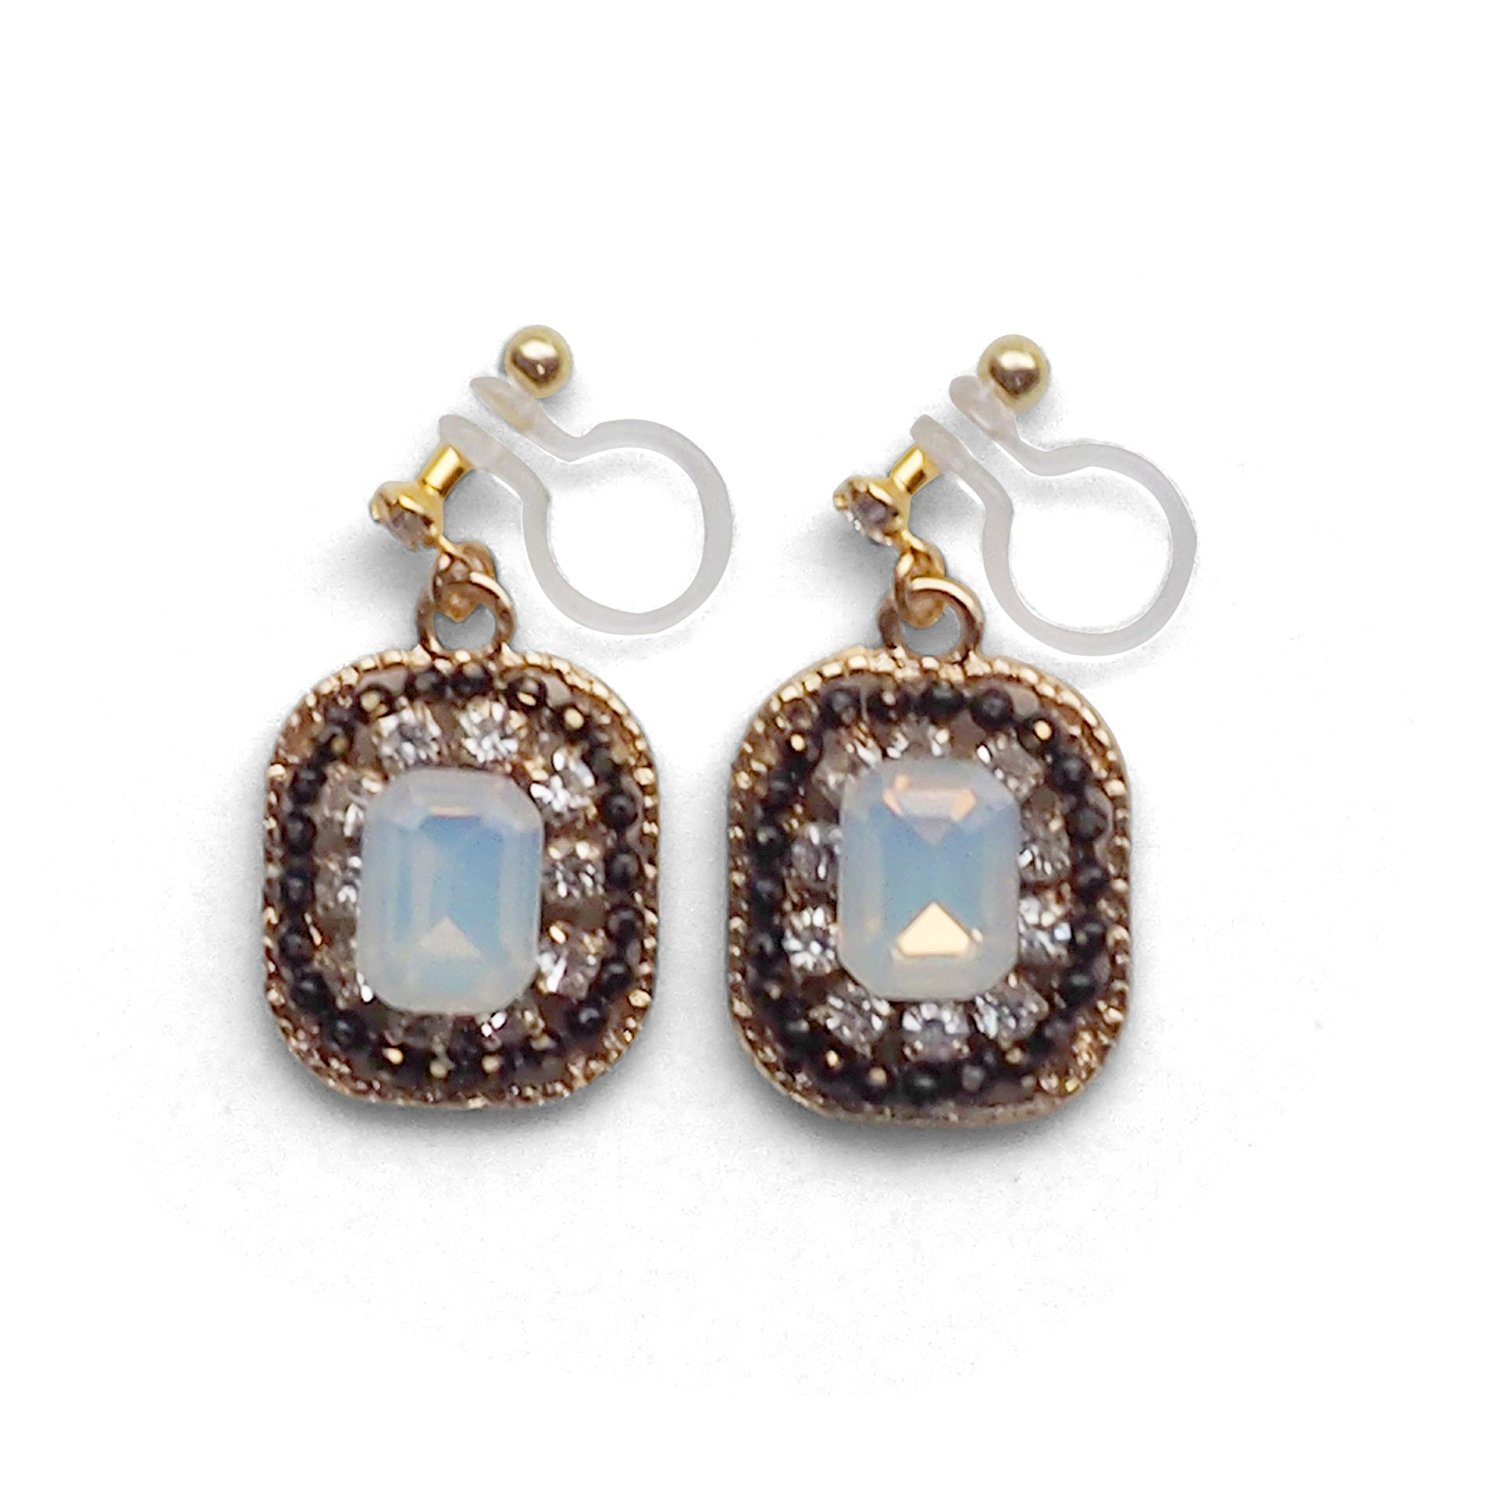 Square White Rhinestone Invisible Clip On Earrings, Fashion Dangle Black Crystal Drop Clip-on Earrings